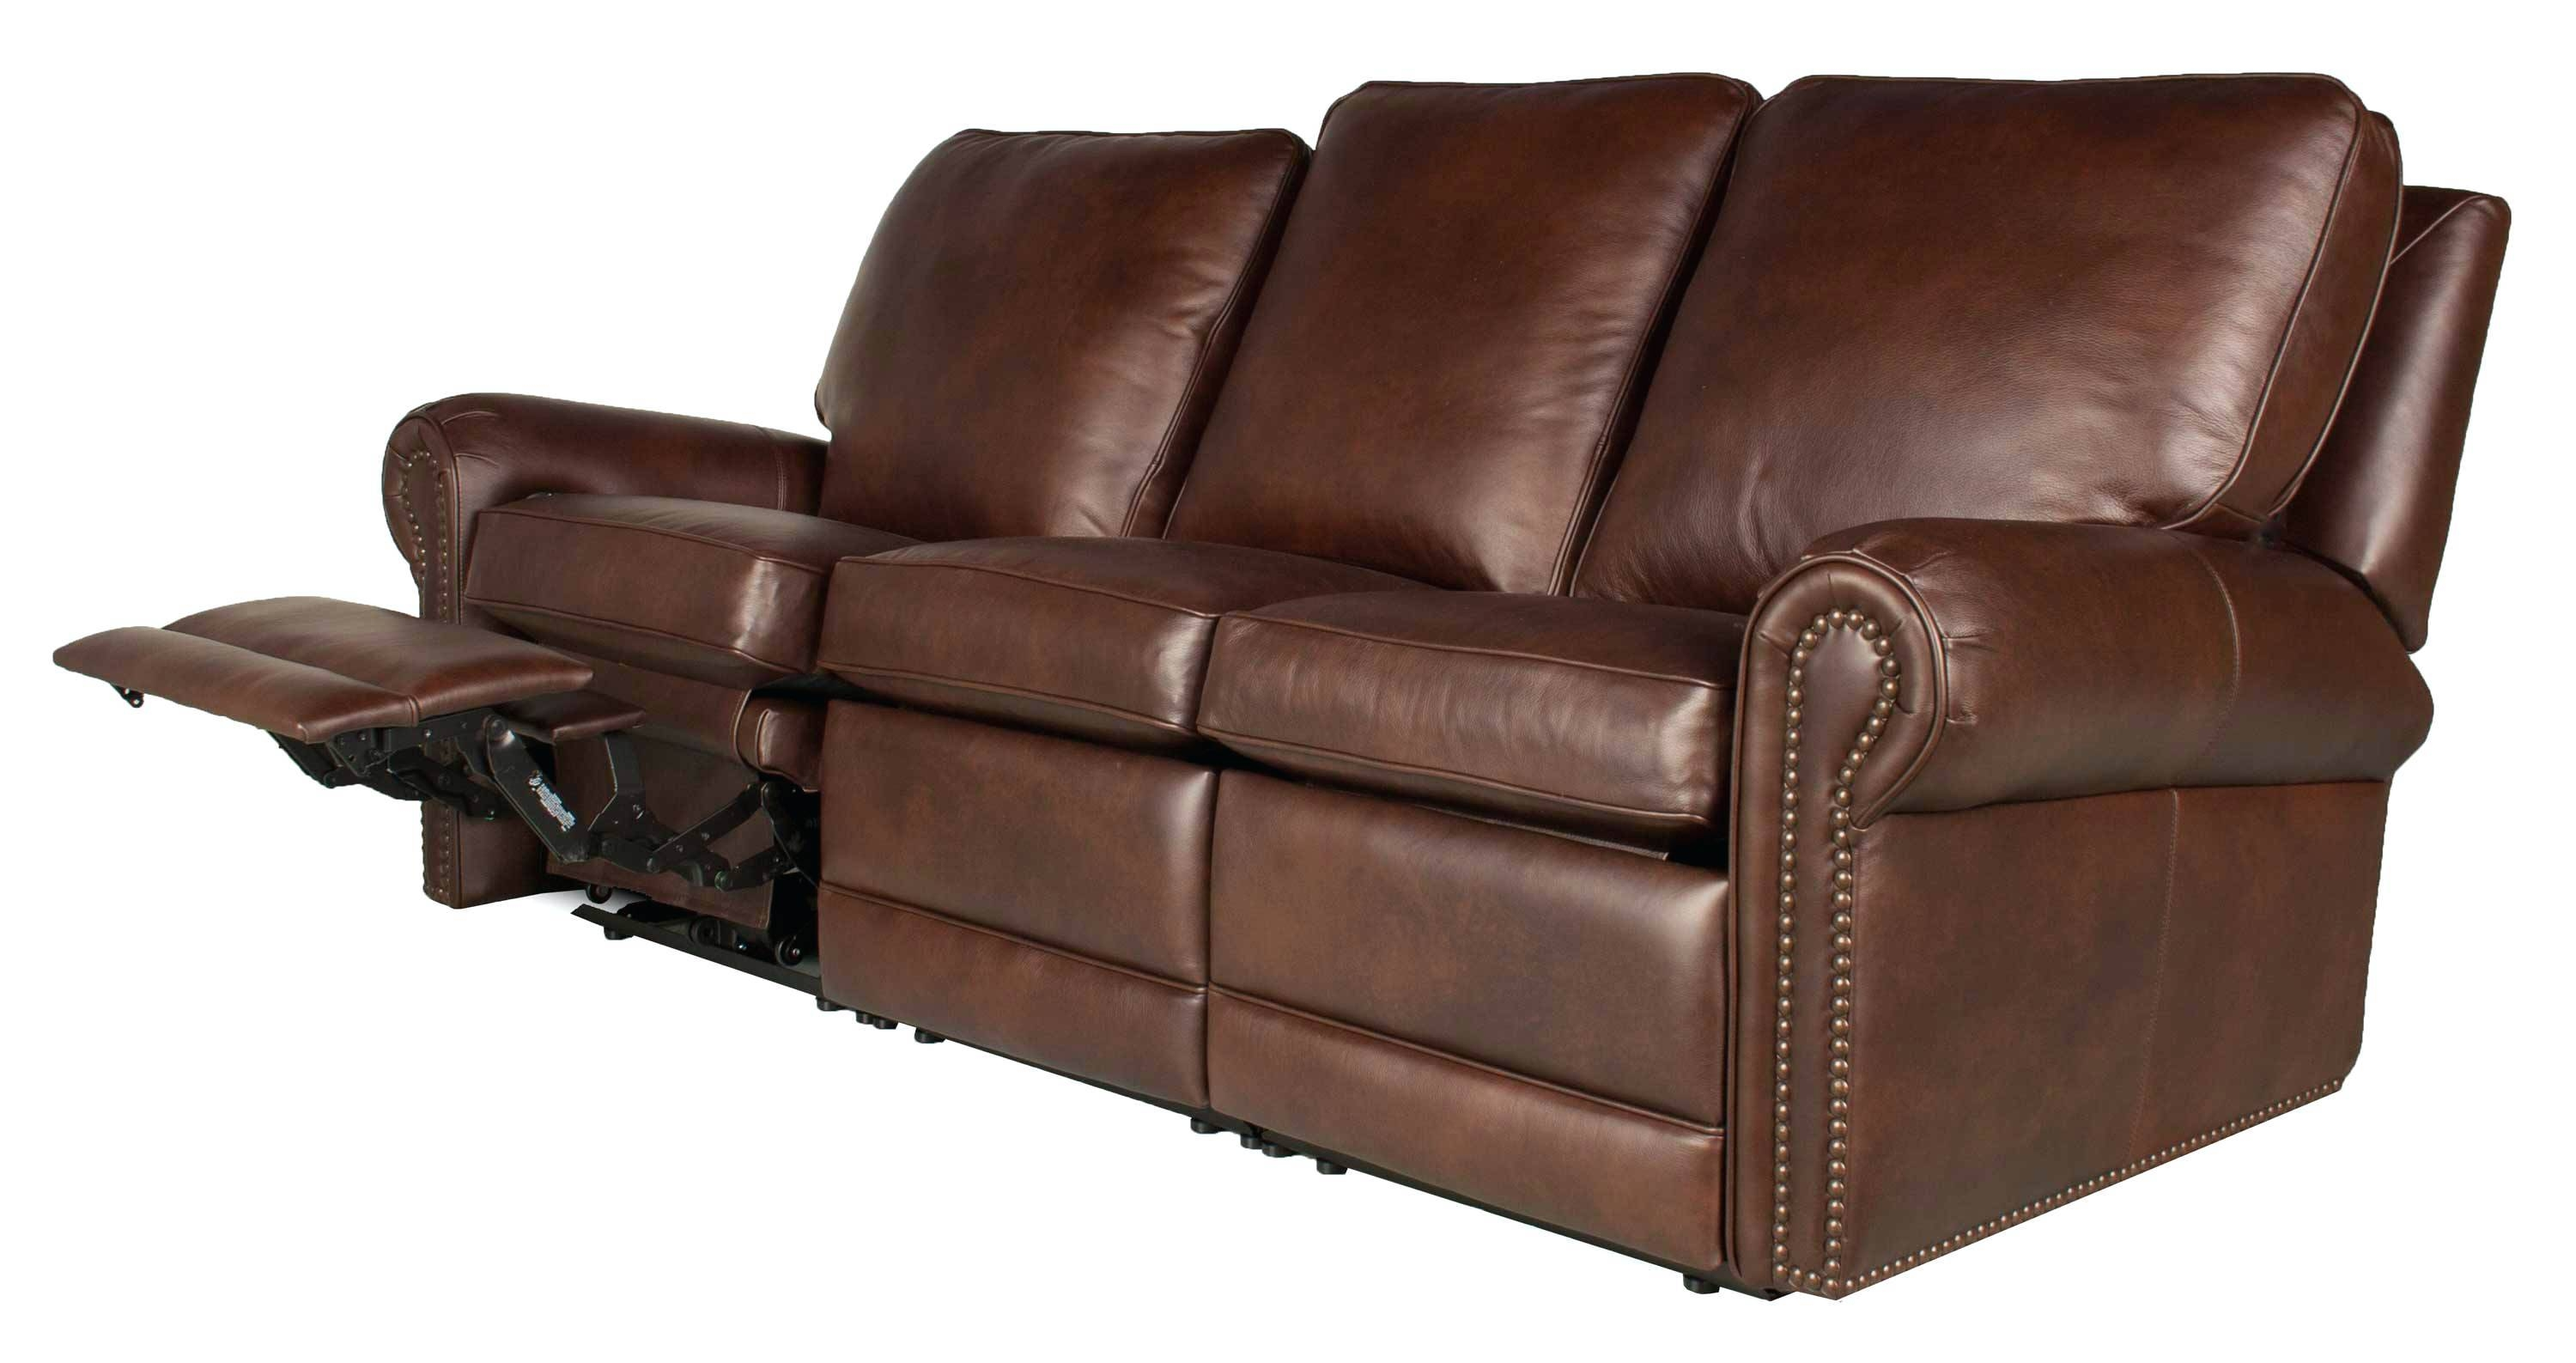 Recliners: Mesmerizing Berkline Leather Recliner For Home regarding Berkline Recliner Sofas (Image 10 of 15)